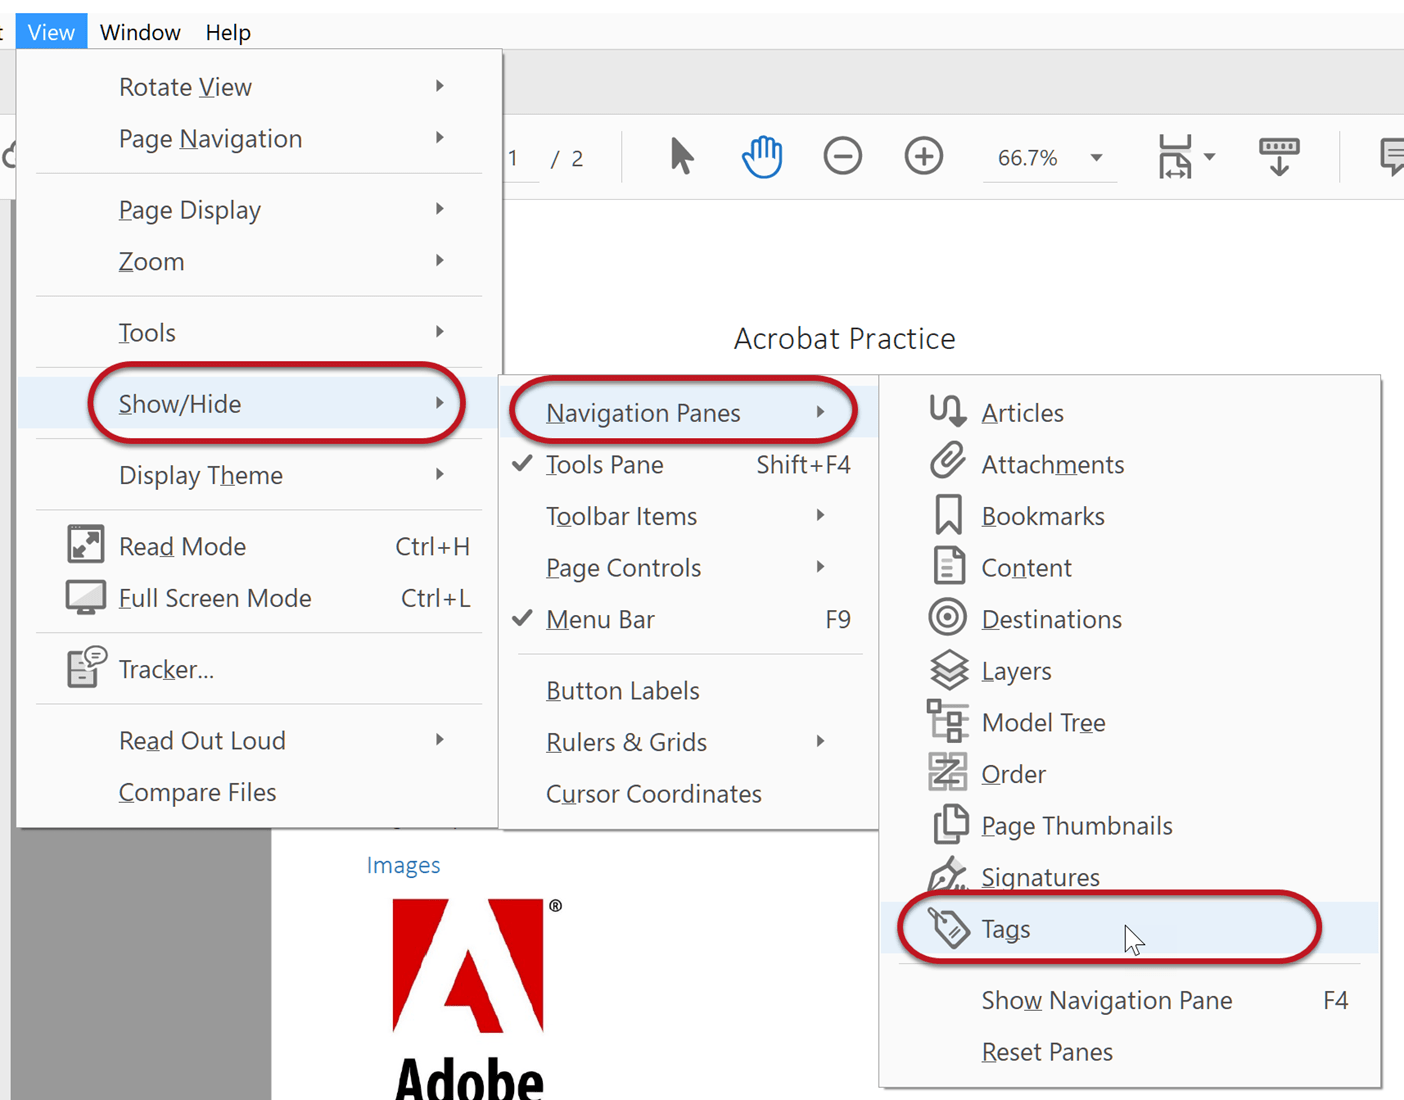 Menu walkthrough to access PDF tags: Go to View, Show/Hide, Navigation Panes, and Tags